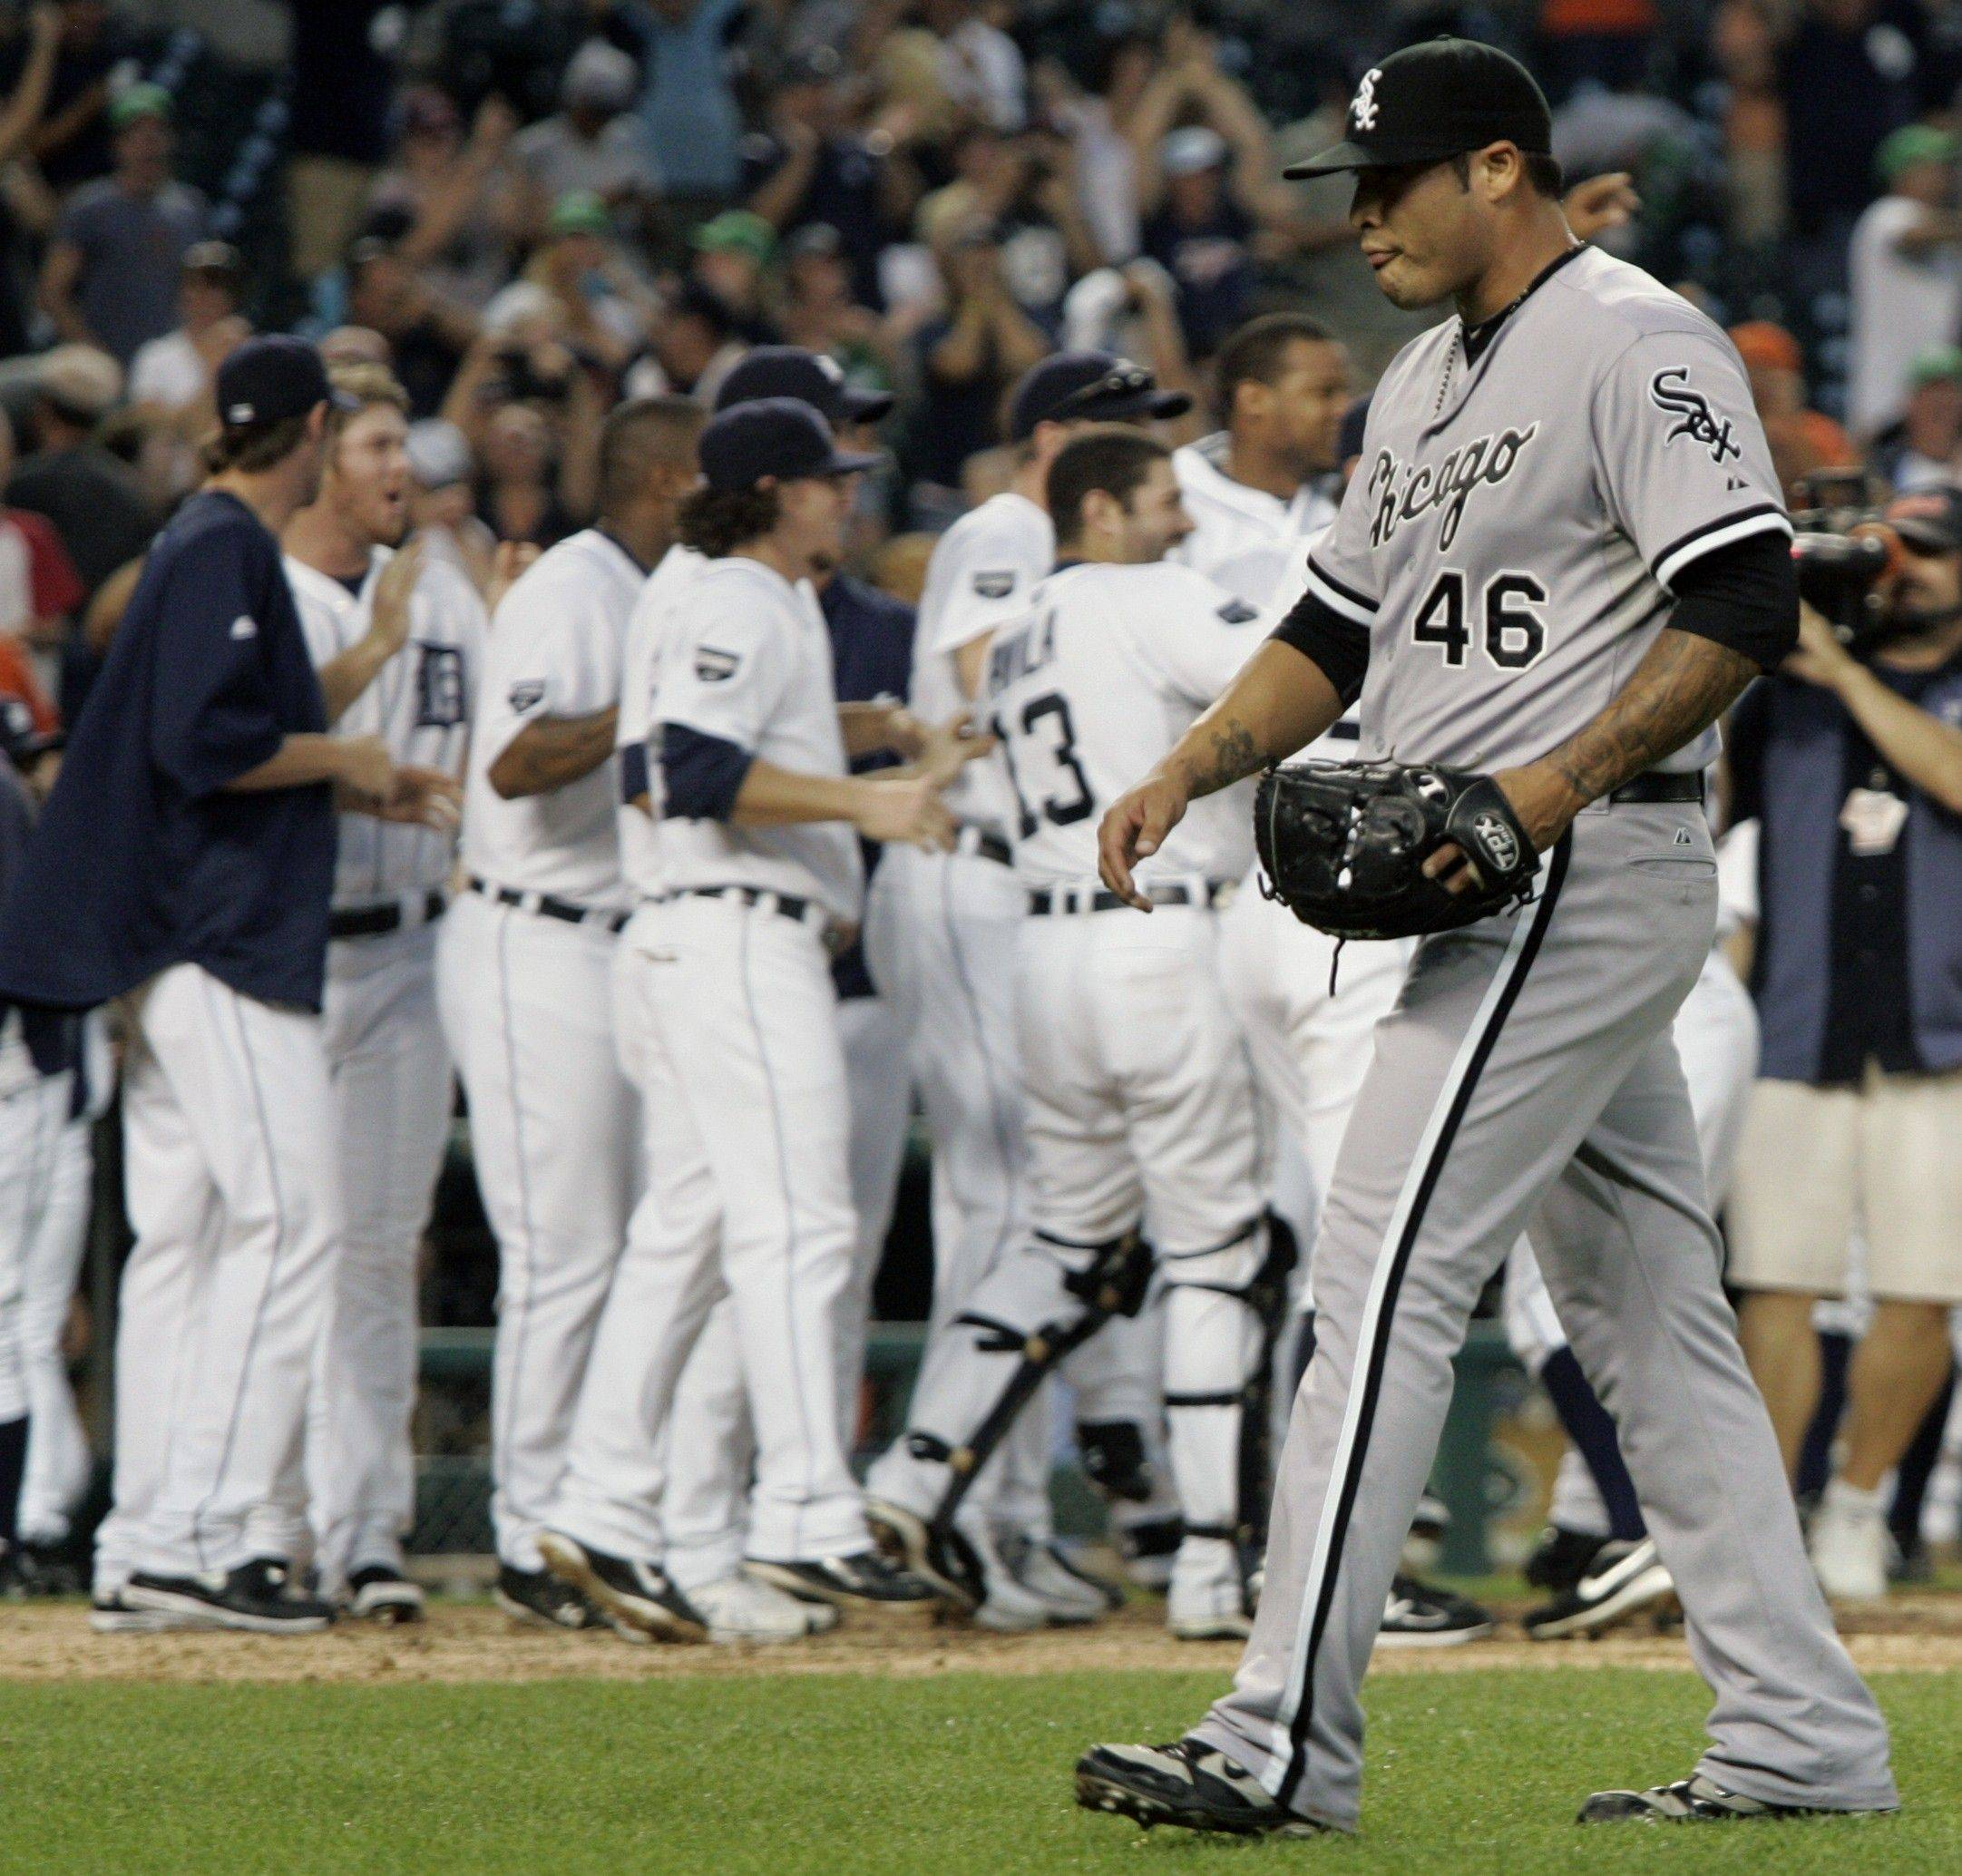 Sergio Santos walks off the field after giving up the game-winning home run to Detroit Tigers' Miguel Cabrera in the ninth inning Saturday in Detroit.